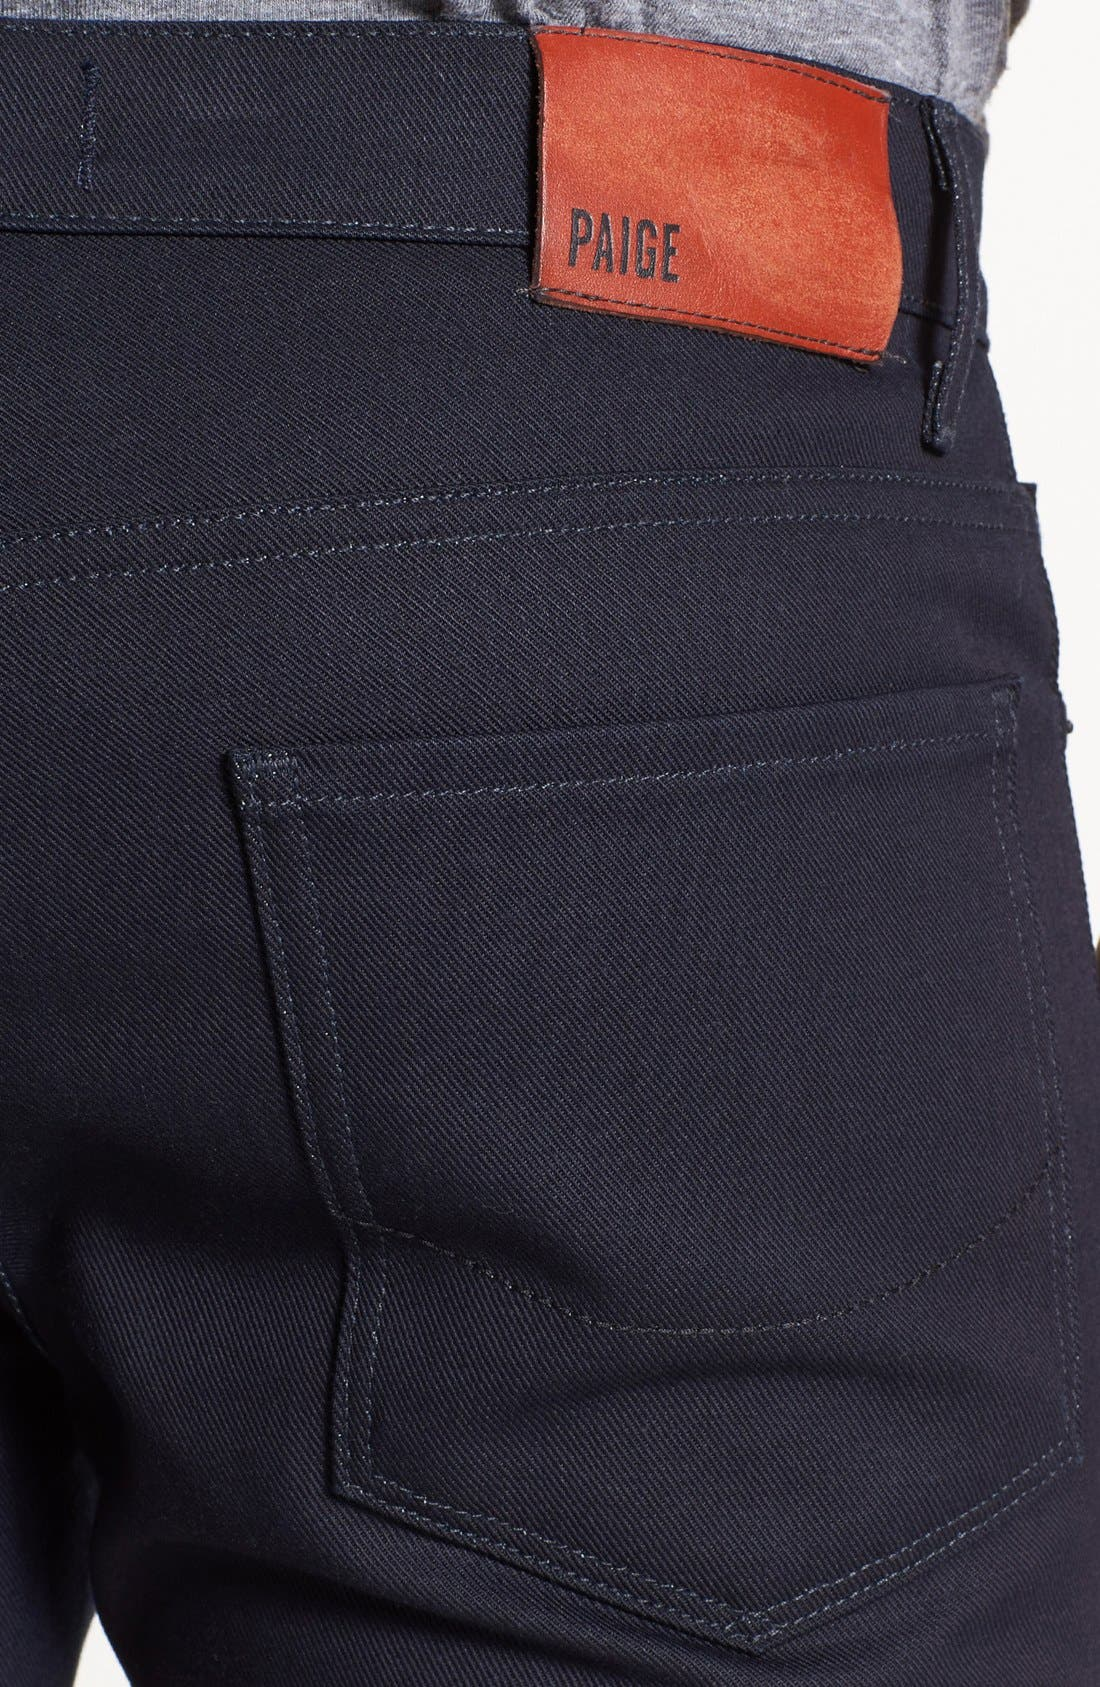 Alternate Image 4  - PAIGE 'Federal' Skinny Fit Selvedge Jeans (Eco Raw)